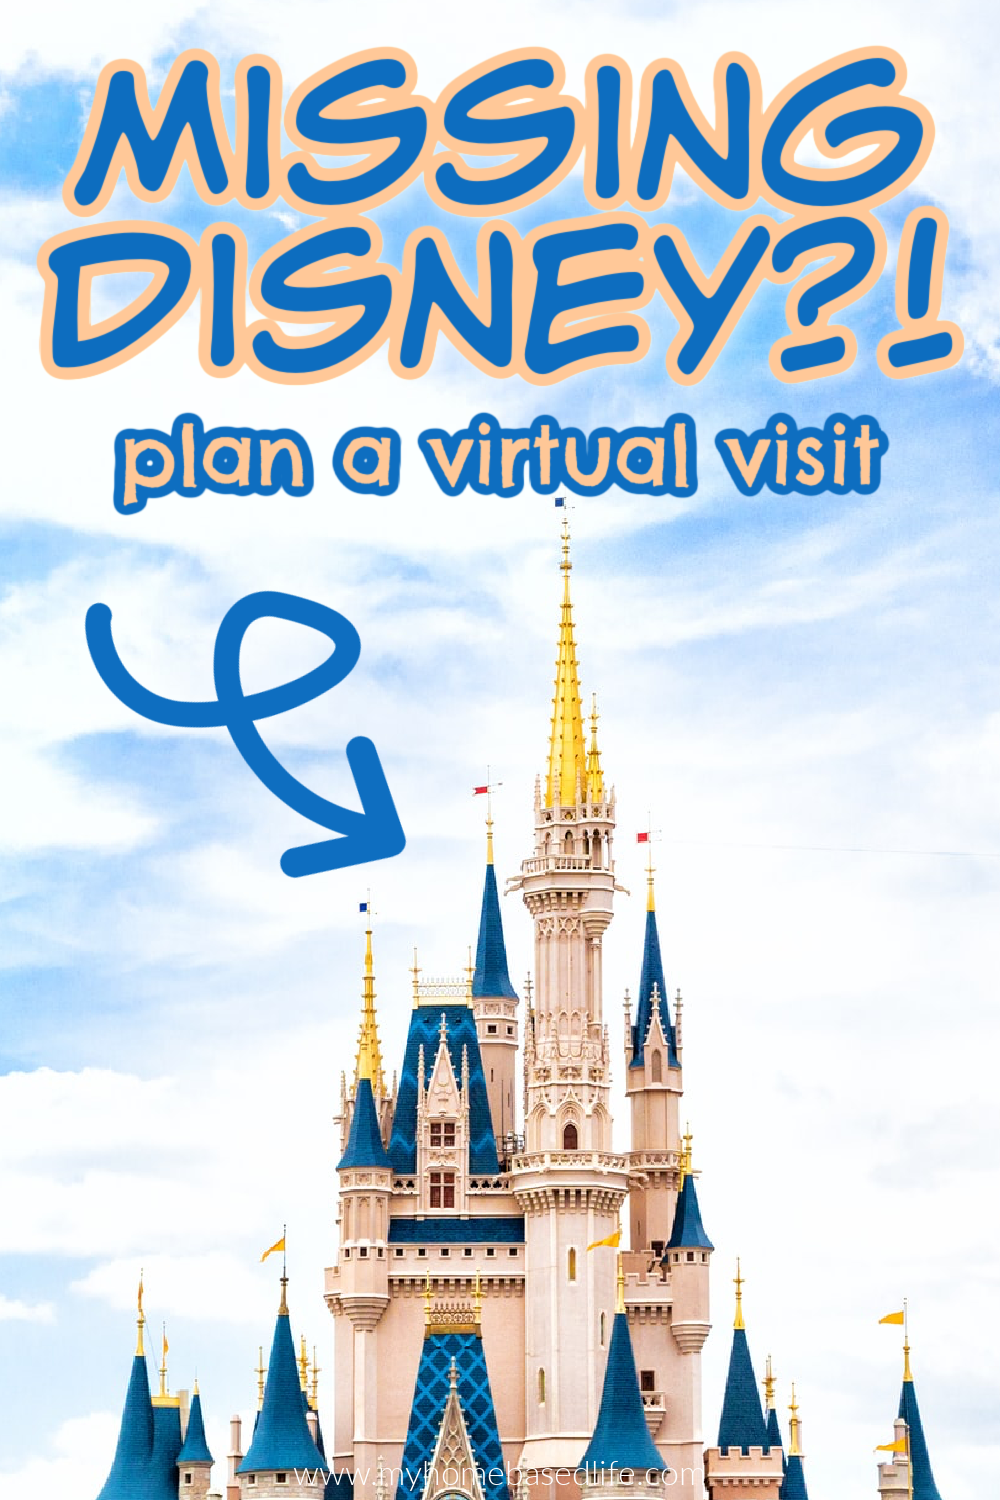 your guide to a virtual Disney visit